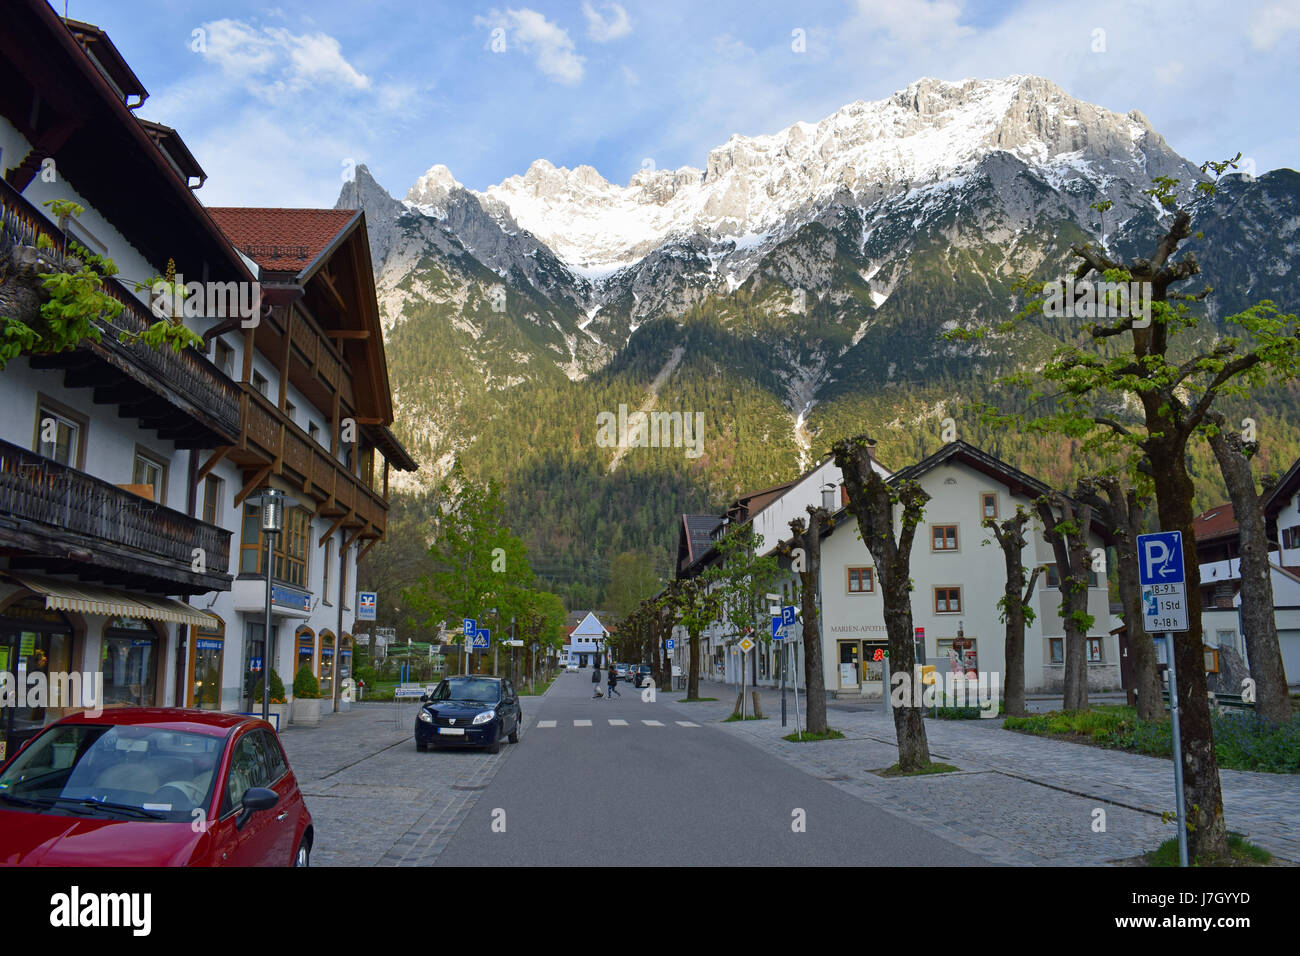 mittenwald karwendel mountains stockfotos mittenwald karwendel mountains bilder alamy. Black Bedroom Furniture Sets. Home Design Ideas